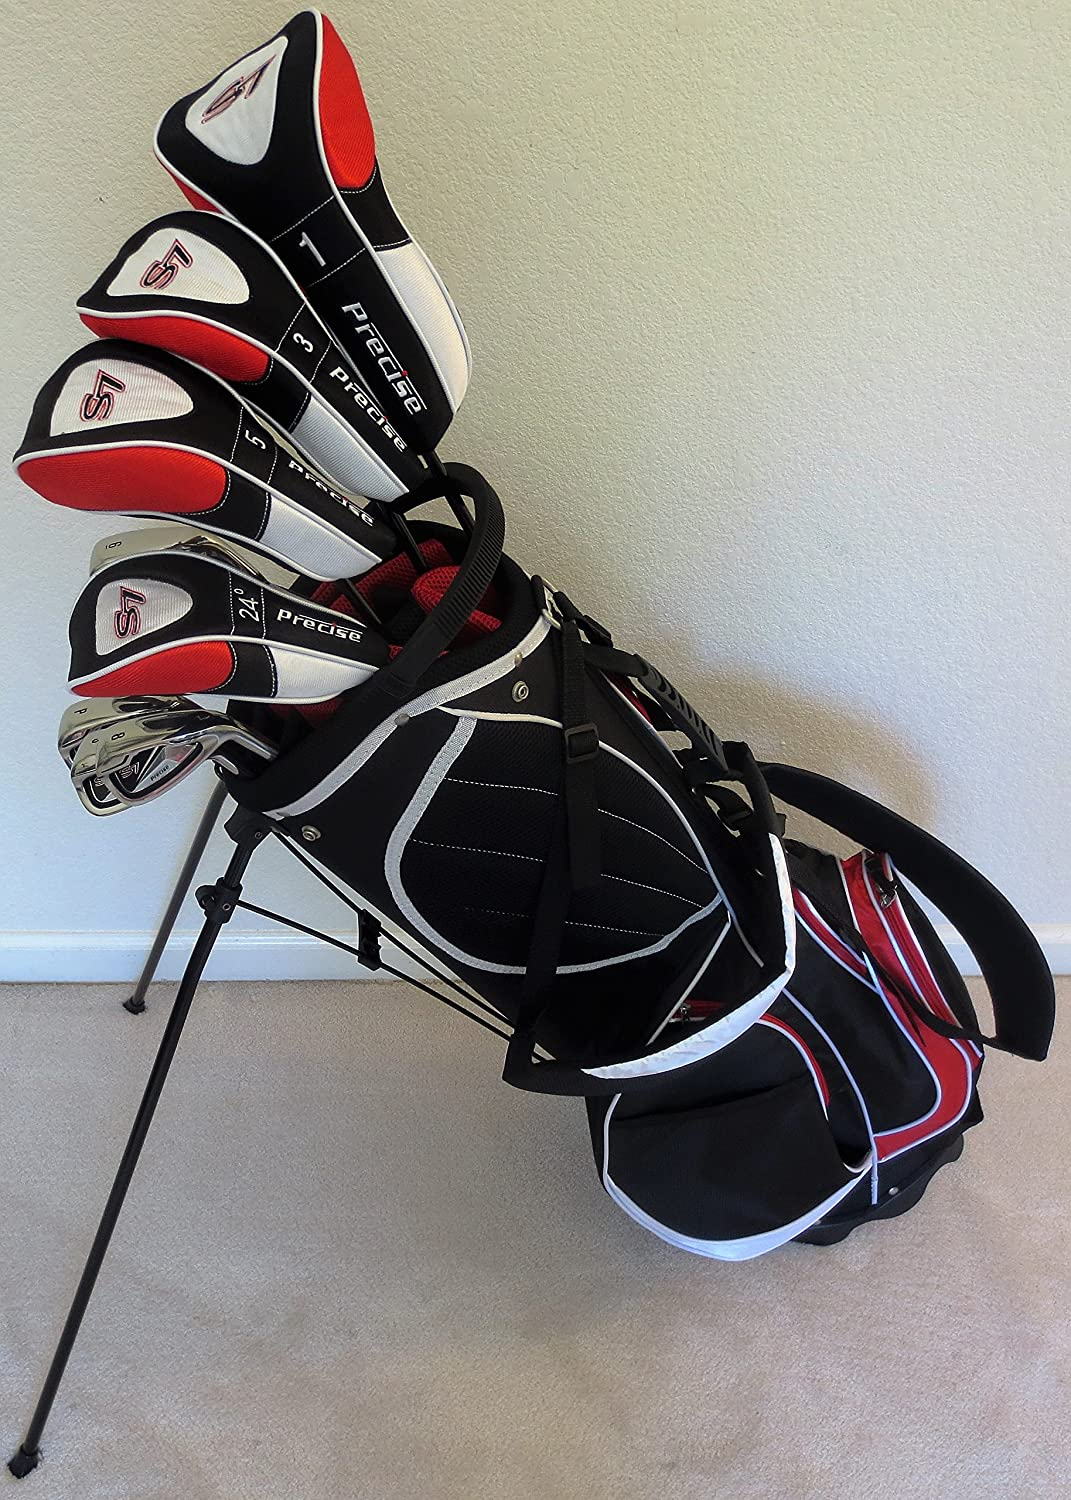 "New Mens Complete Golf Set Custom Made Clubs for Tall Men 6'0""- 6'6"" Tall Right Handed Driver, Fairway Woods, Hybrid, Irons, Sand Wedge, Putter Stiff Flex"